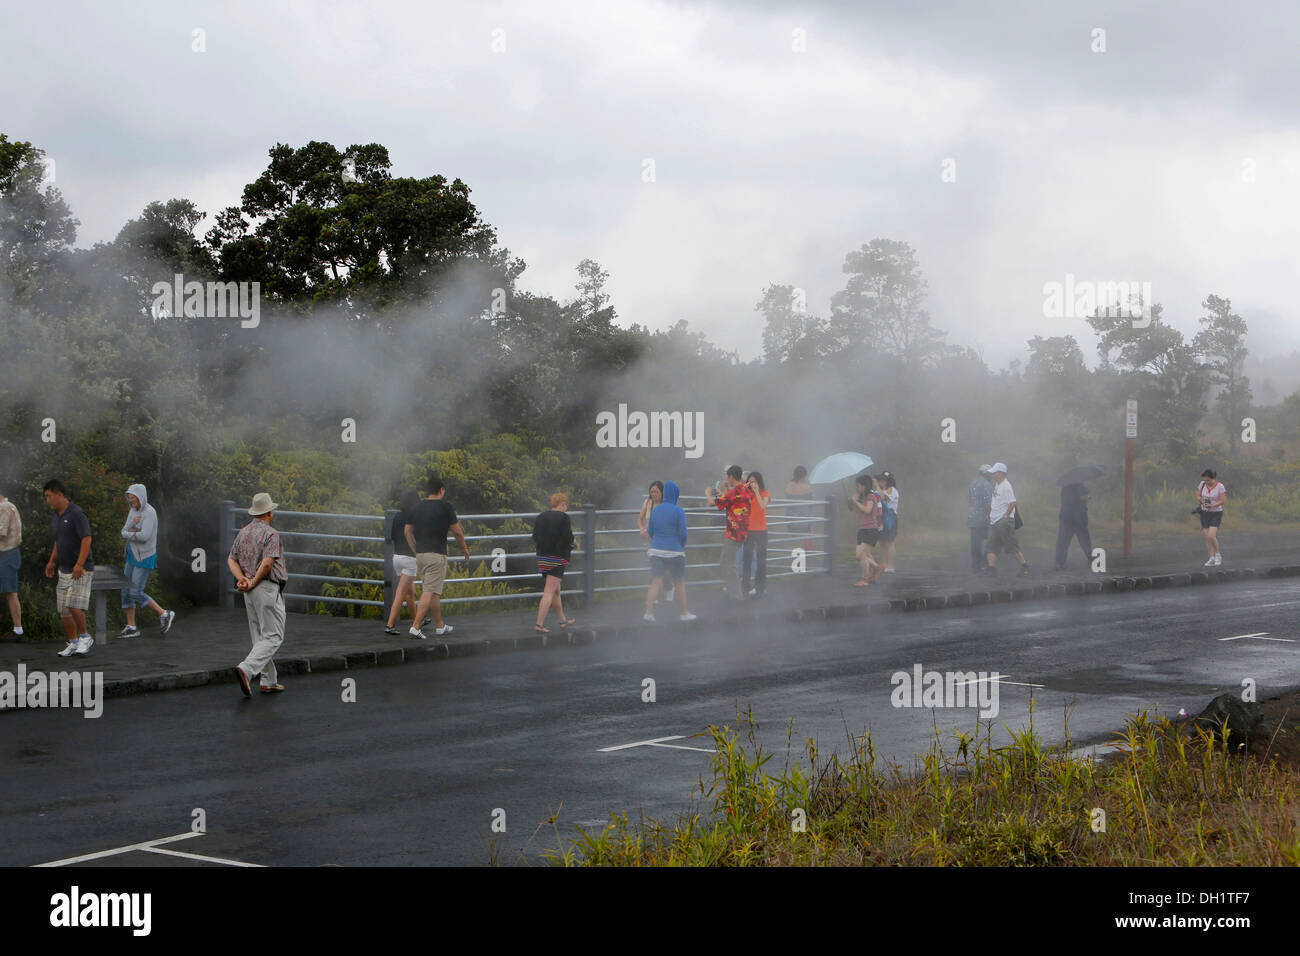 Tourists observing steam vents, hot springs, Hawaii Volcanoes National Park, Big Island, Hawaii, USA - Stock Image